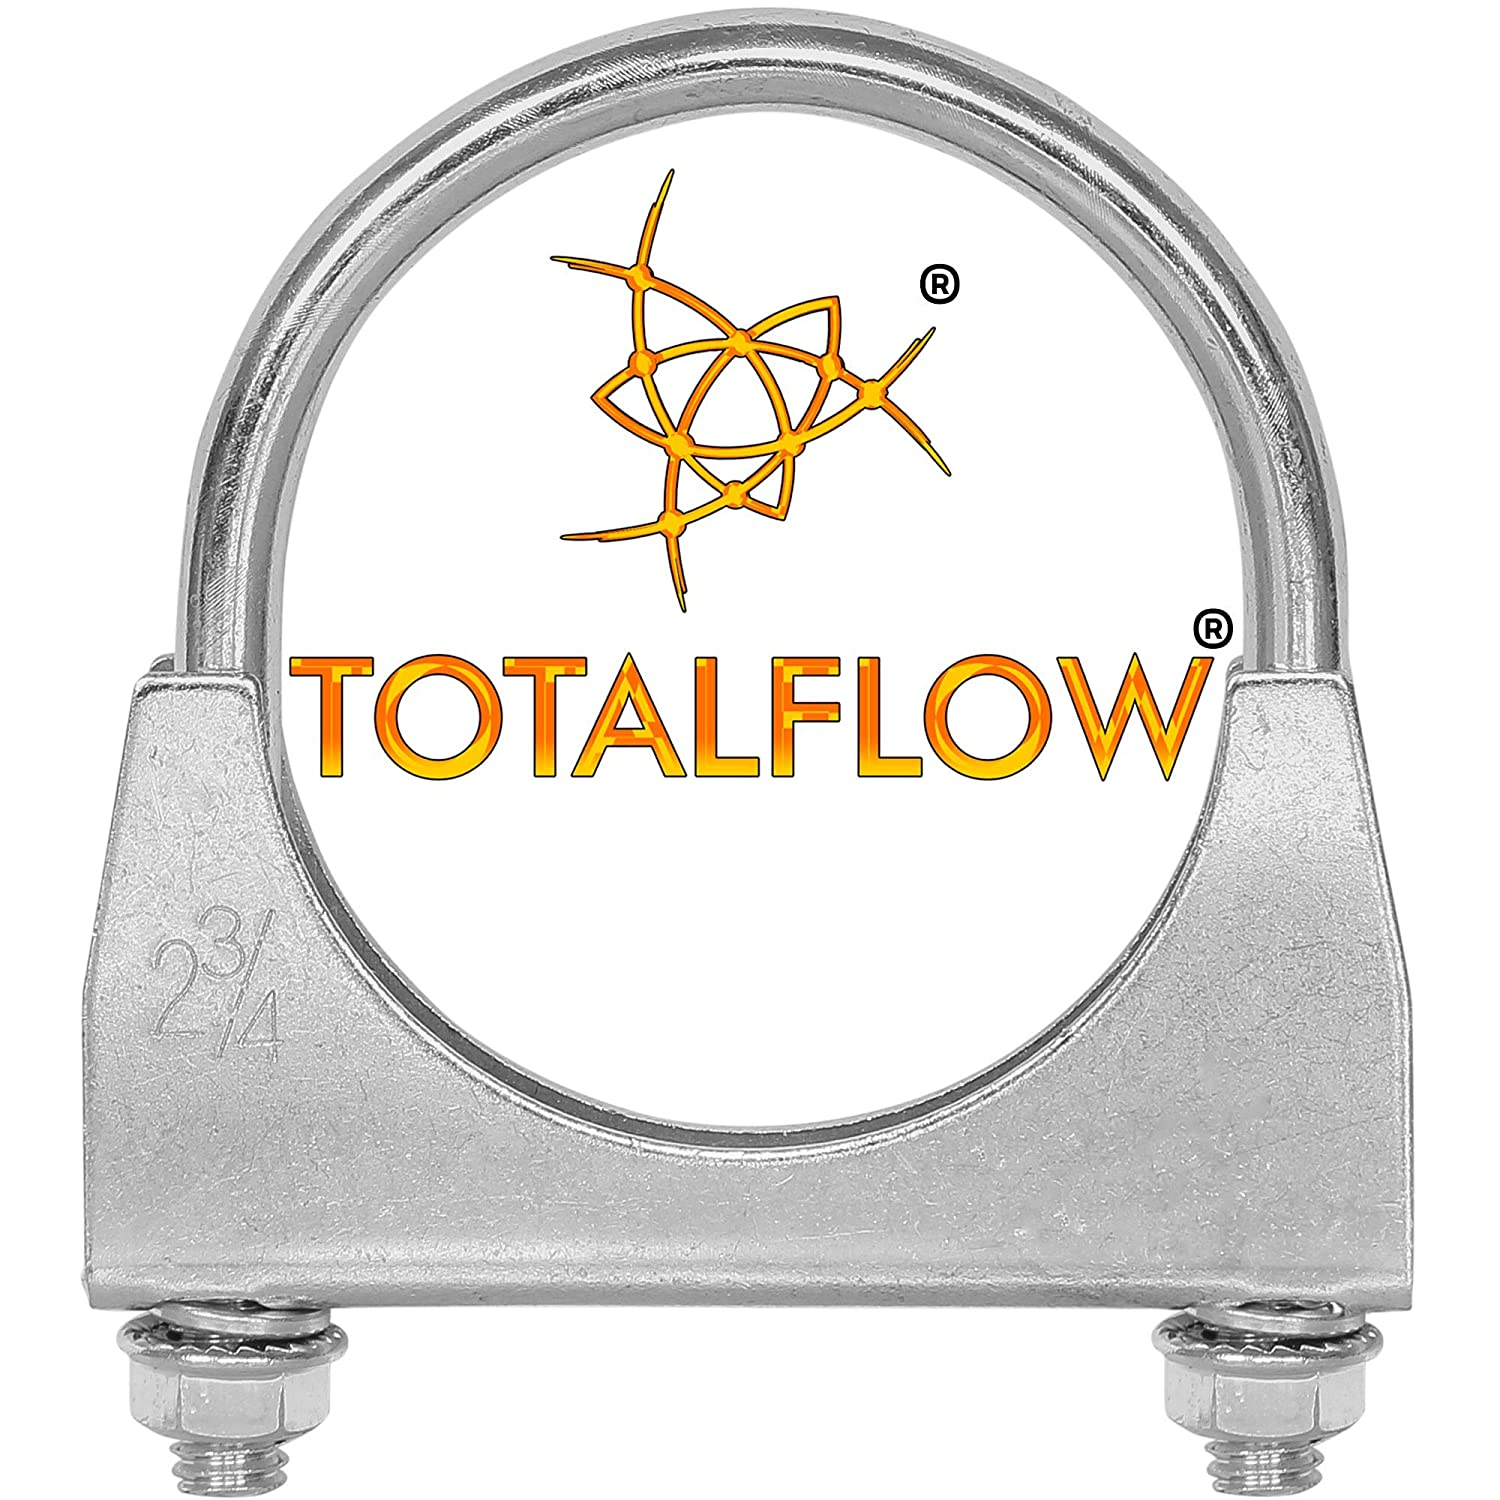 TOTALFLOW 2.75 TF-275SS 409 Stainless Steel Single Bolt AccuSeal Exhaust Muffler Clamp Band-2.75 Inch